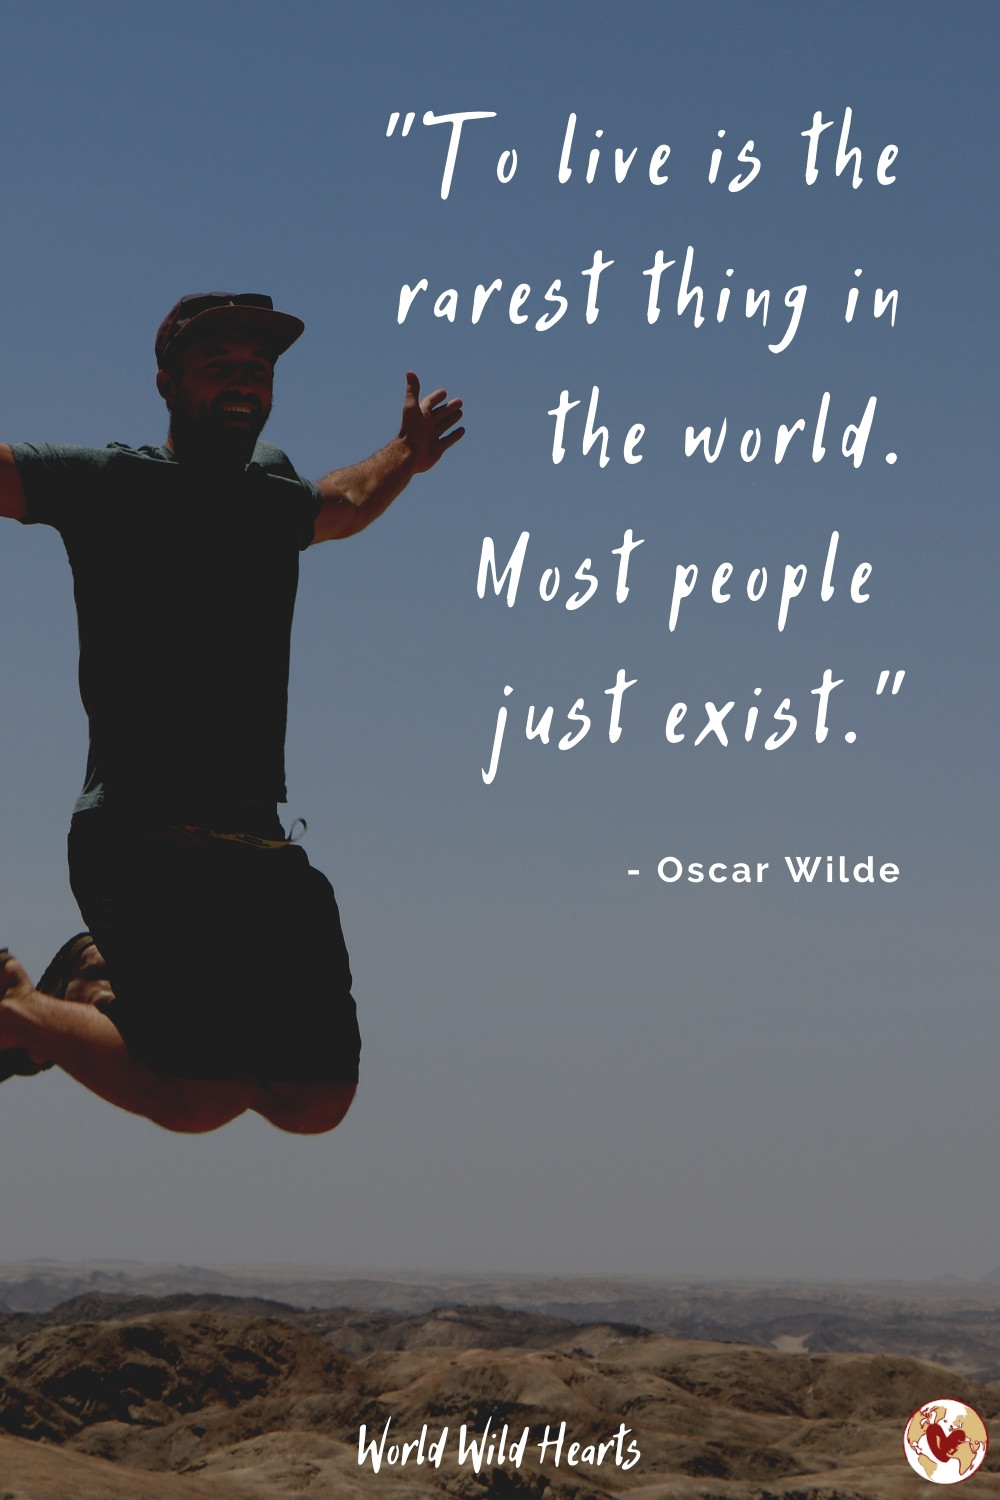 Travel quote by Oscar Wilde